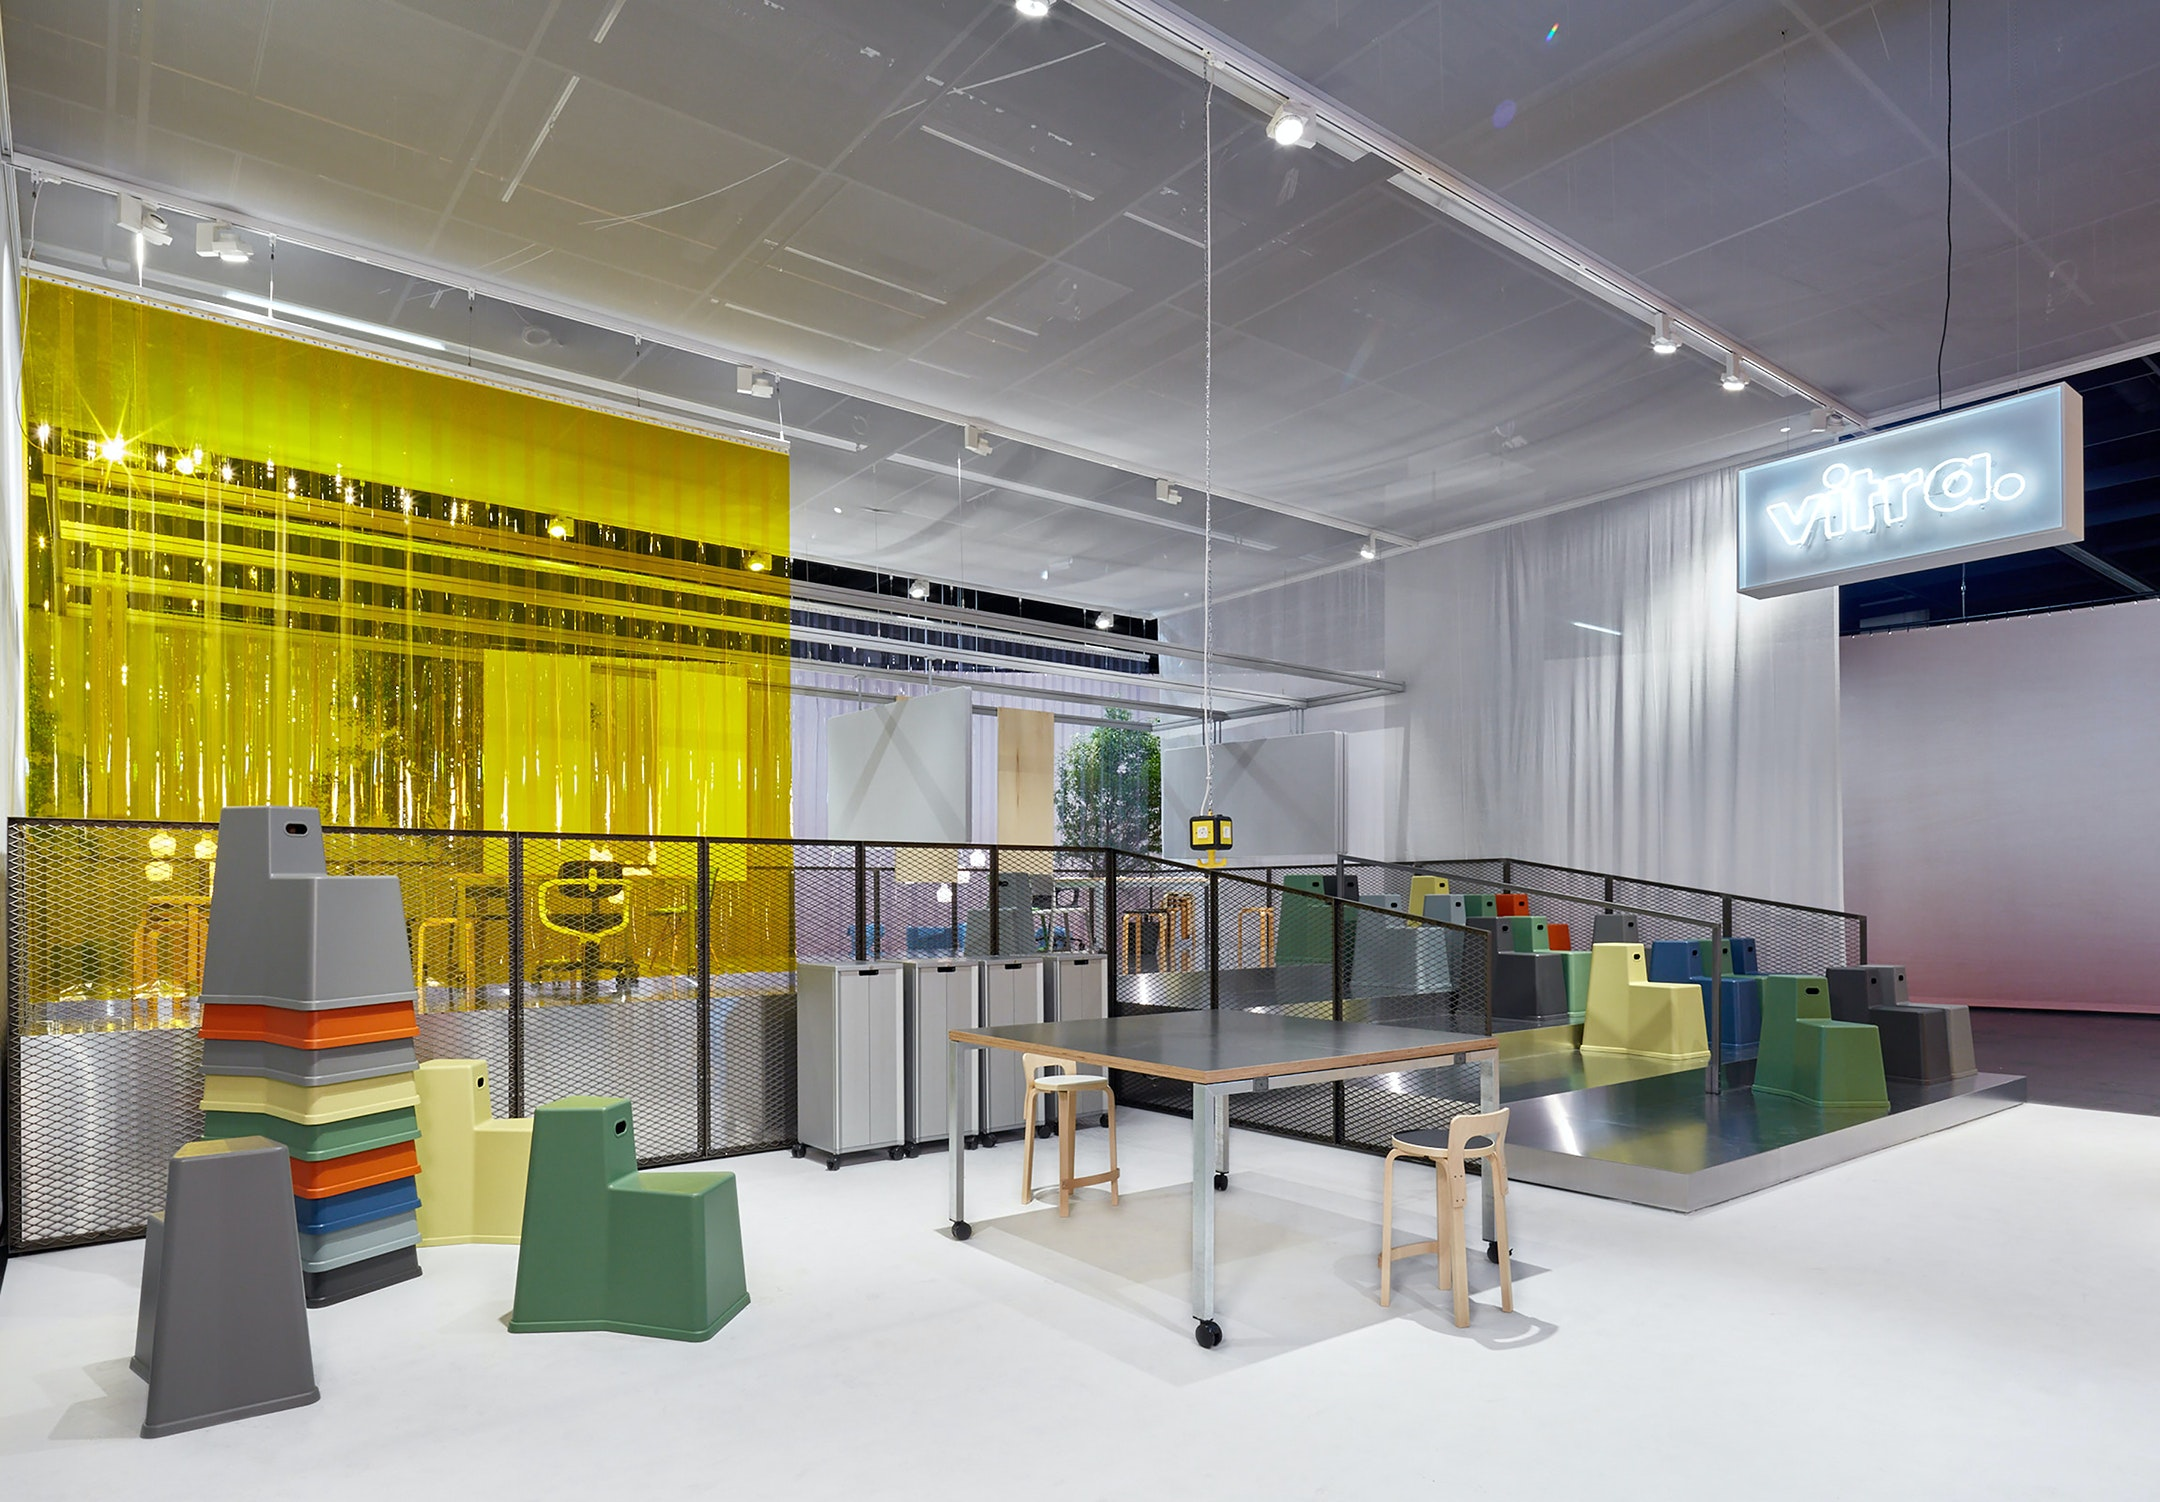 Hackers Vitra Autodesk And Adobe Come Together This